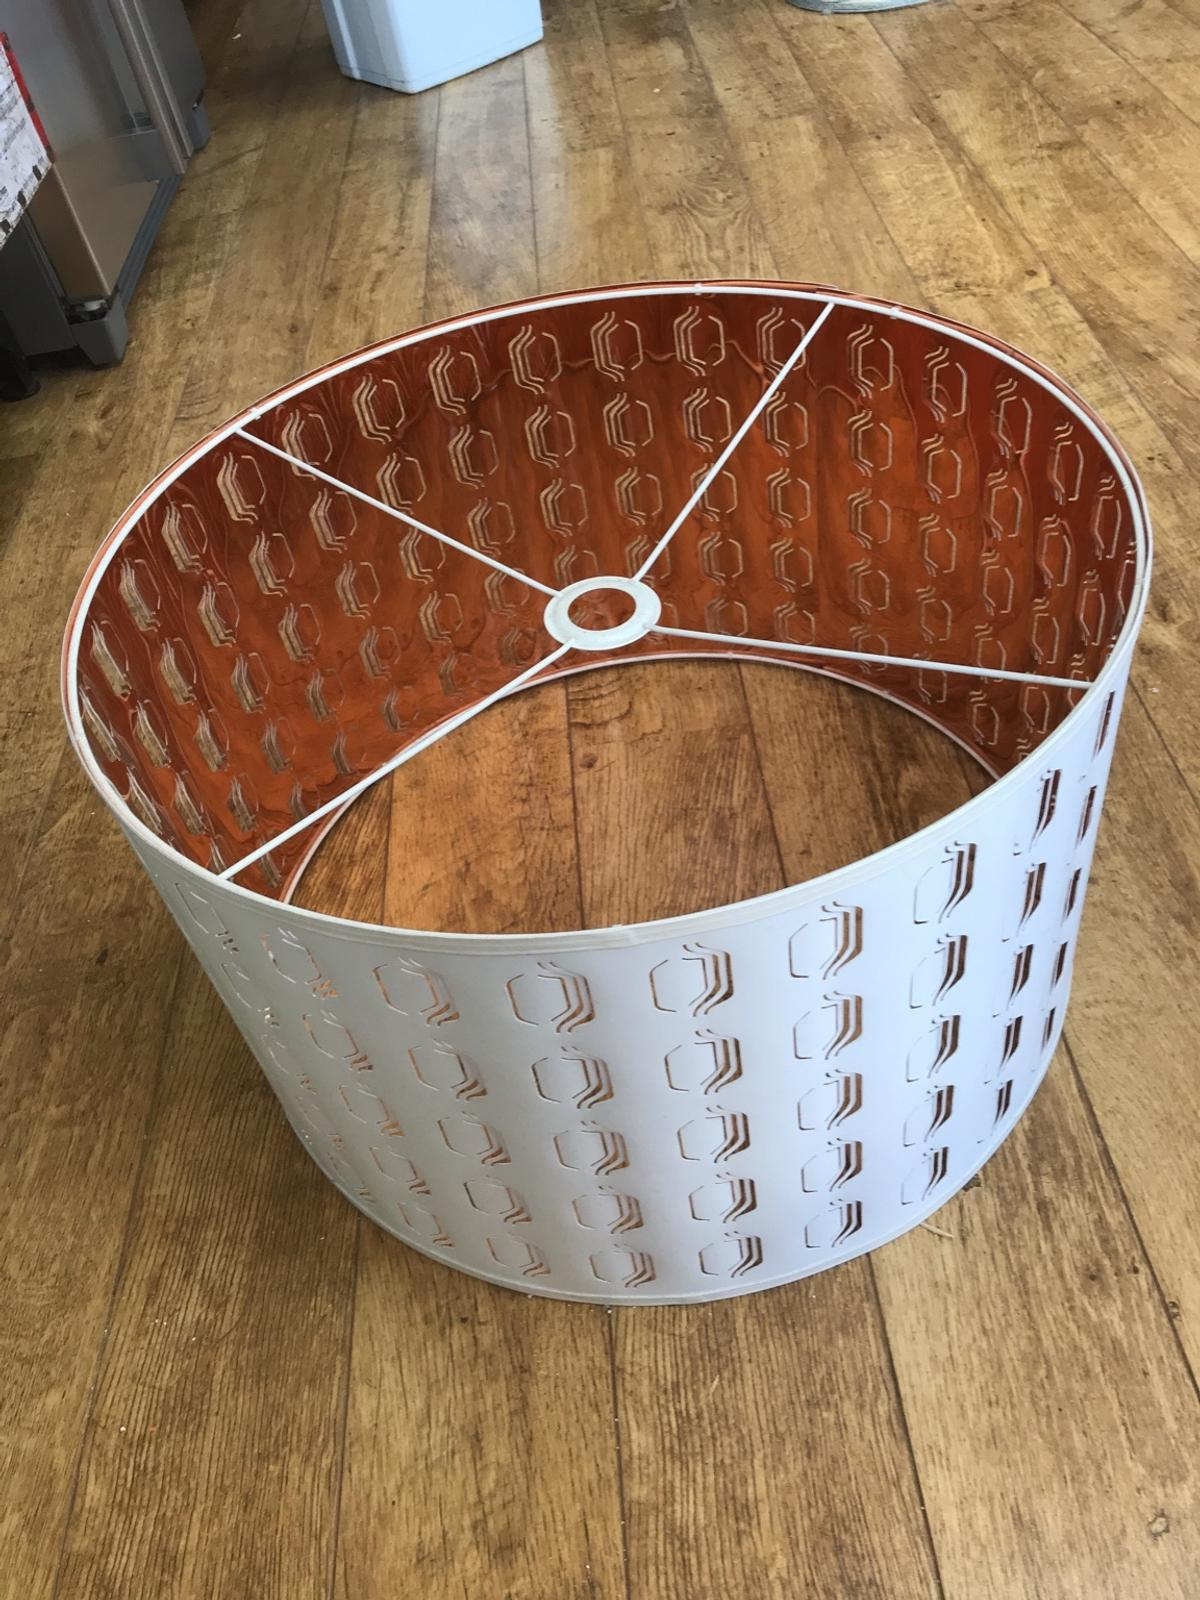 Ikea Pendant Light Shade In Wa8 Widnes For 15 00 For Sale Shpock